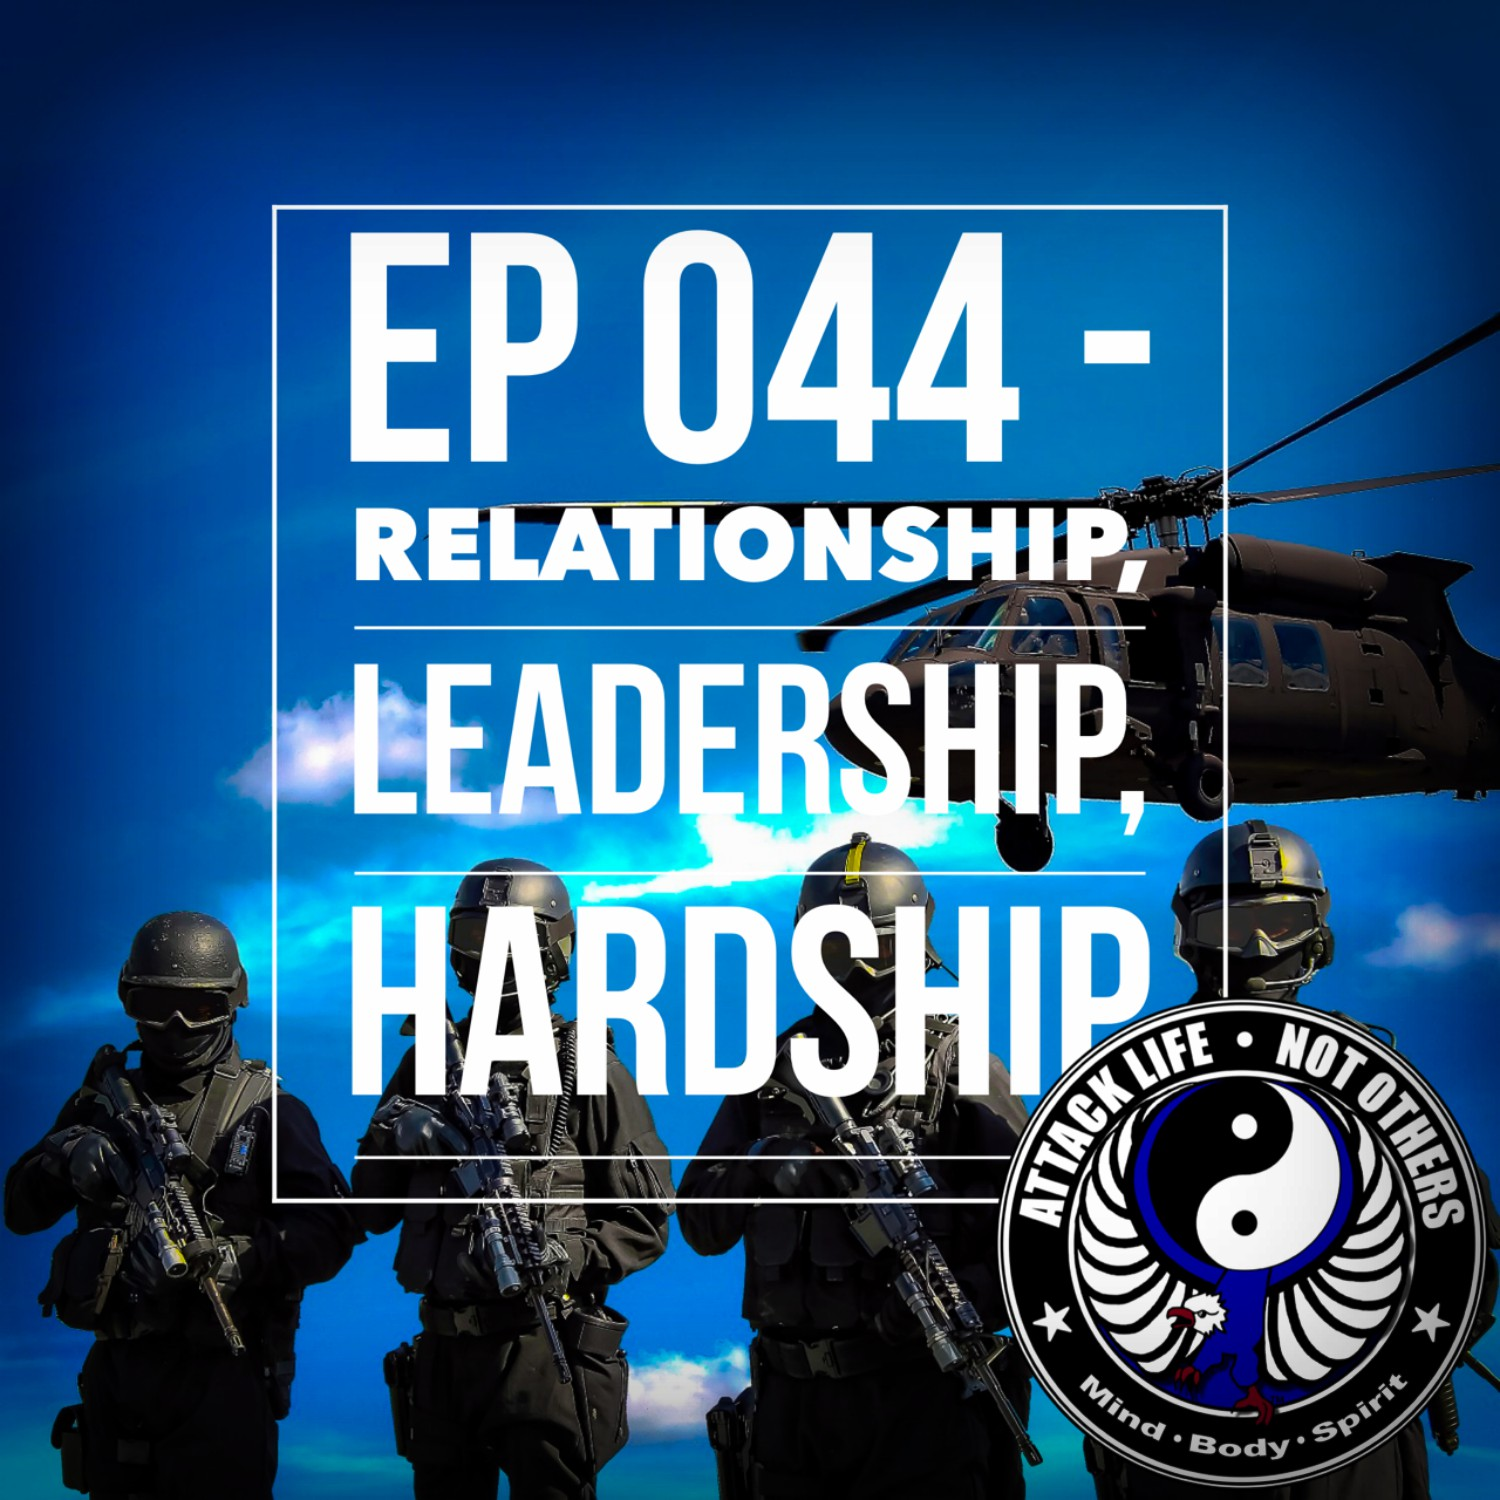 Artwork for Ep 044 - Relationship, Leadership, Hardship